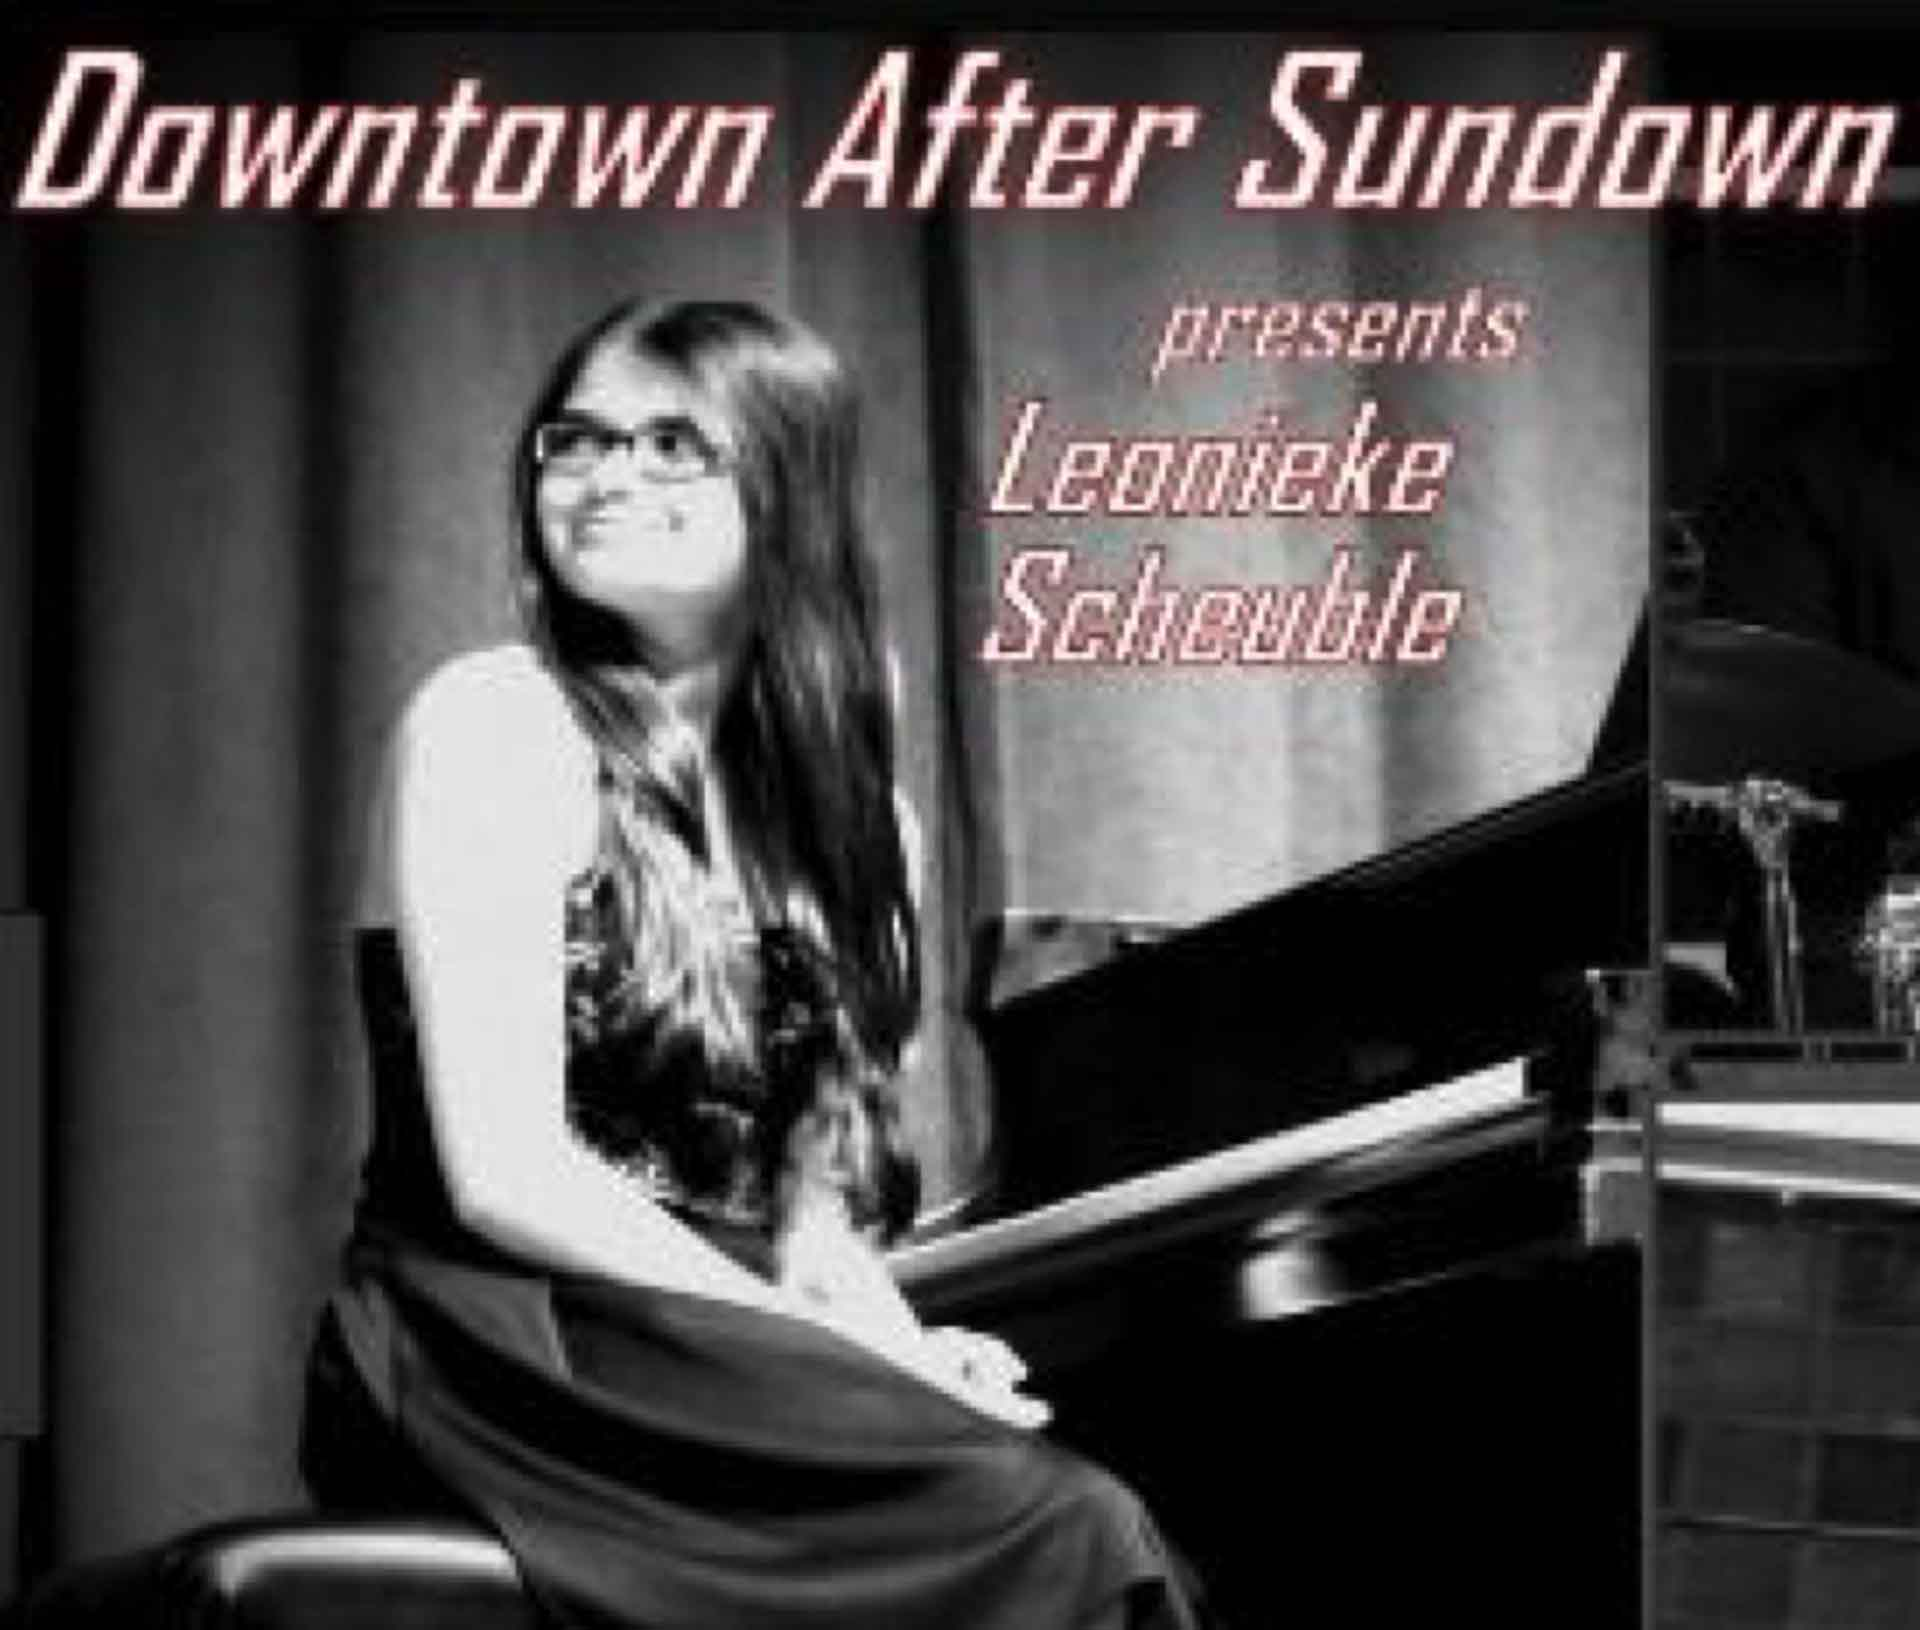 June 28th Leonieke Scheuble Trio .jpg